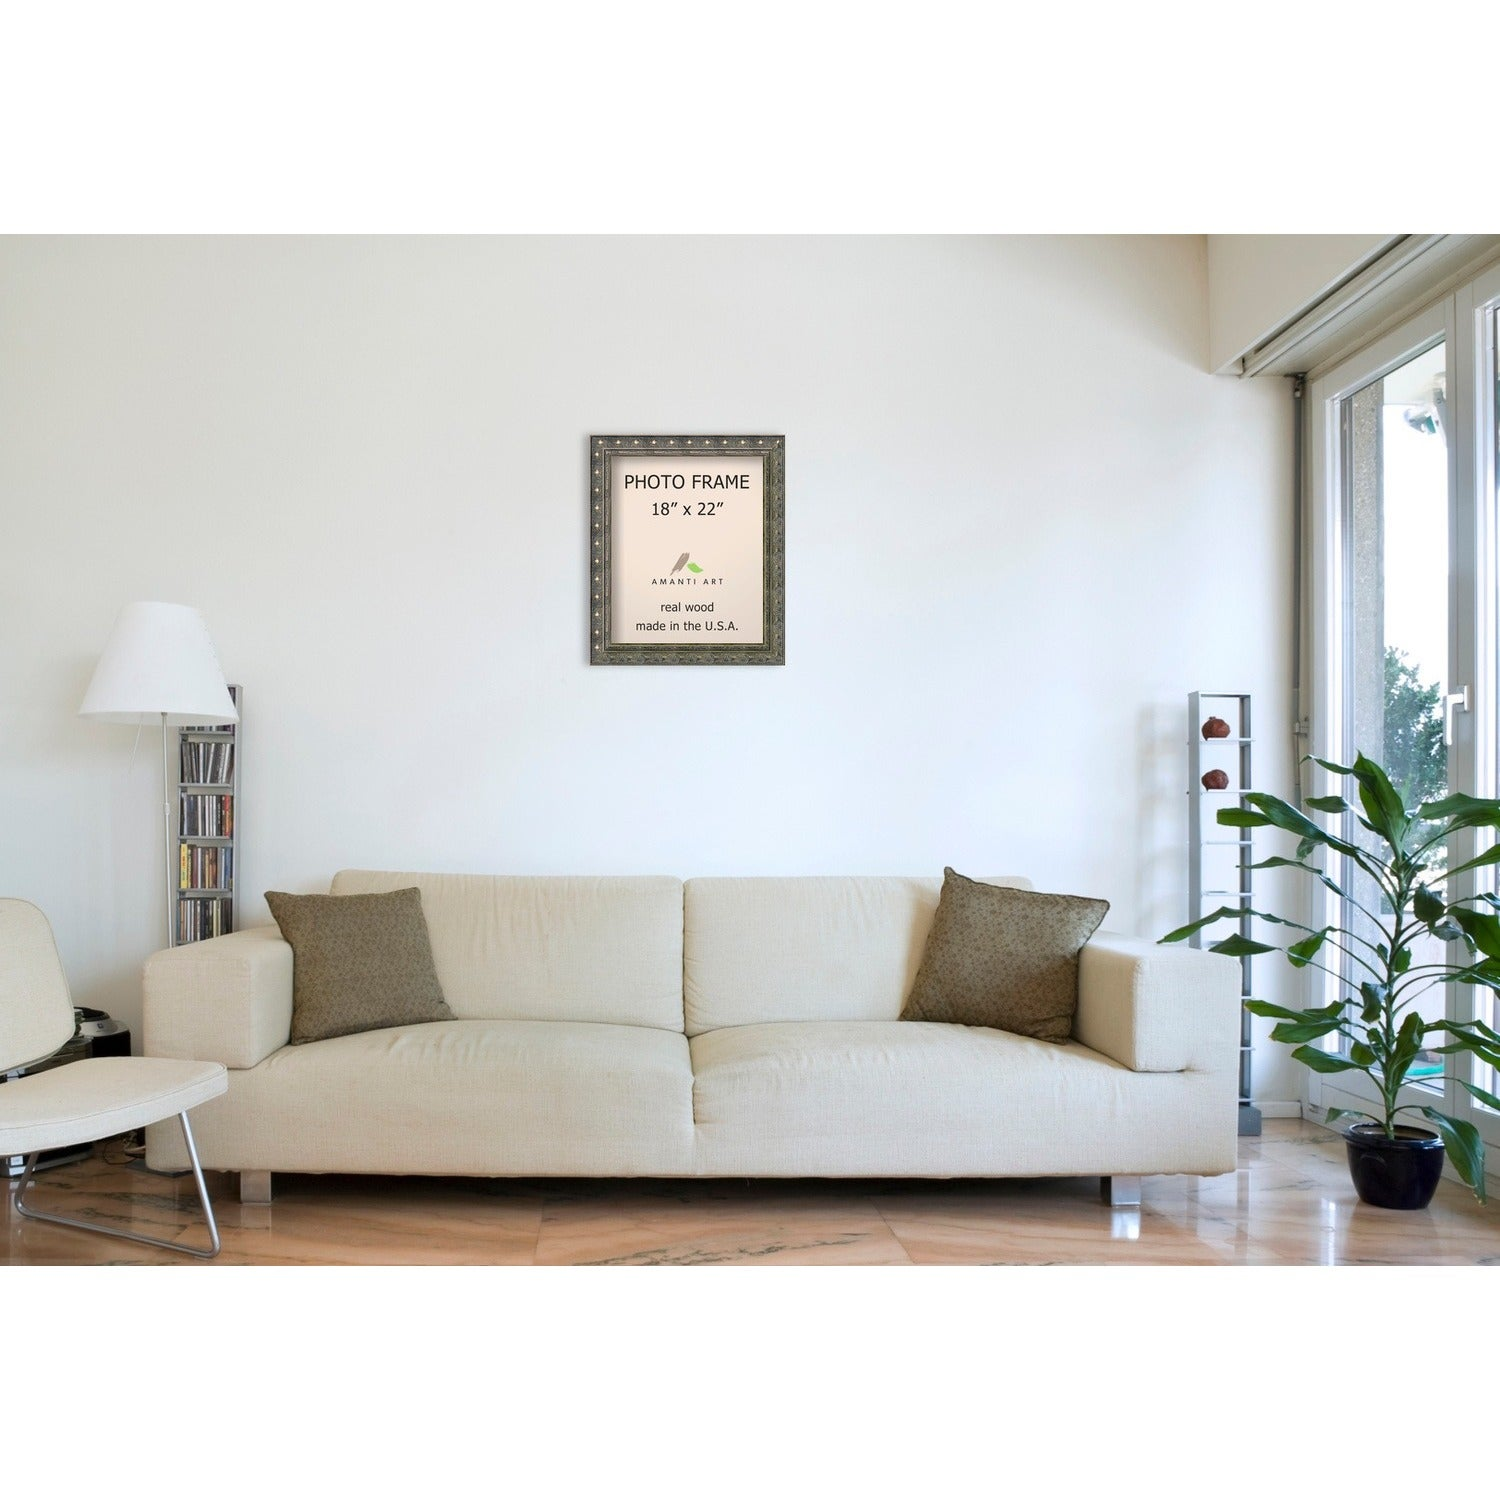 Shop Barcelona 22 x 26-inch Photo Frame - Free Shipping Today ...